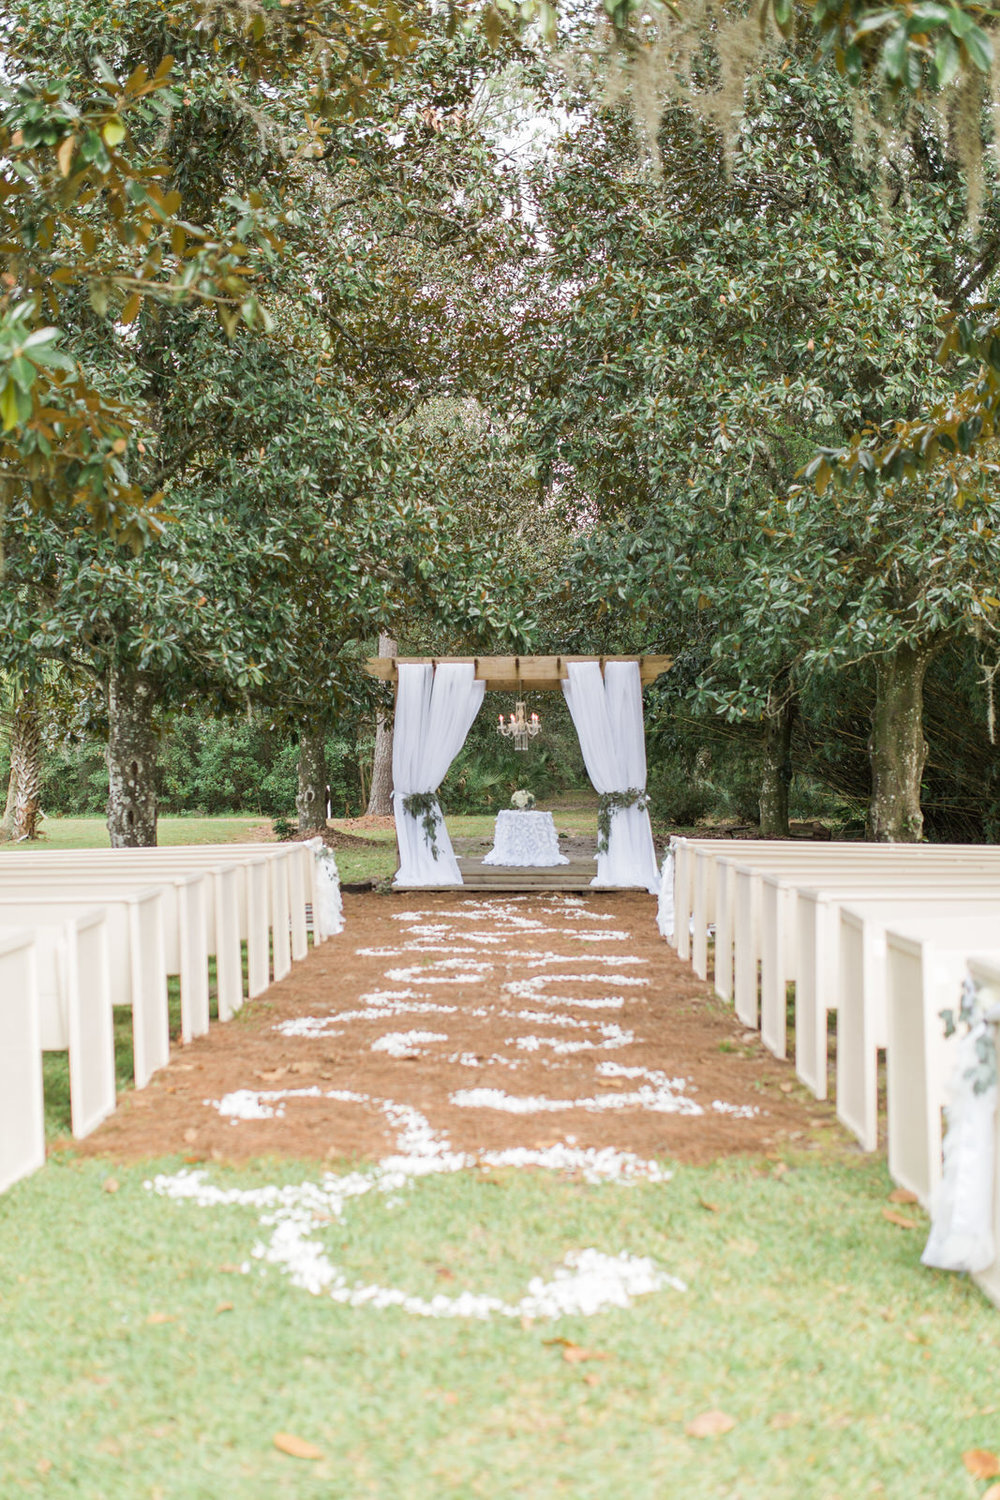 Outdoor wedding reception under trees, rose petals lining aisle, fabric draped gazebo